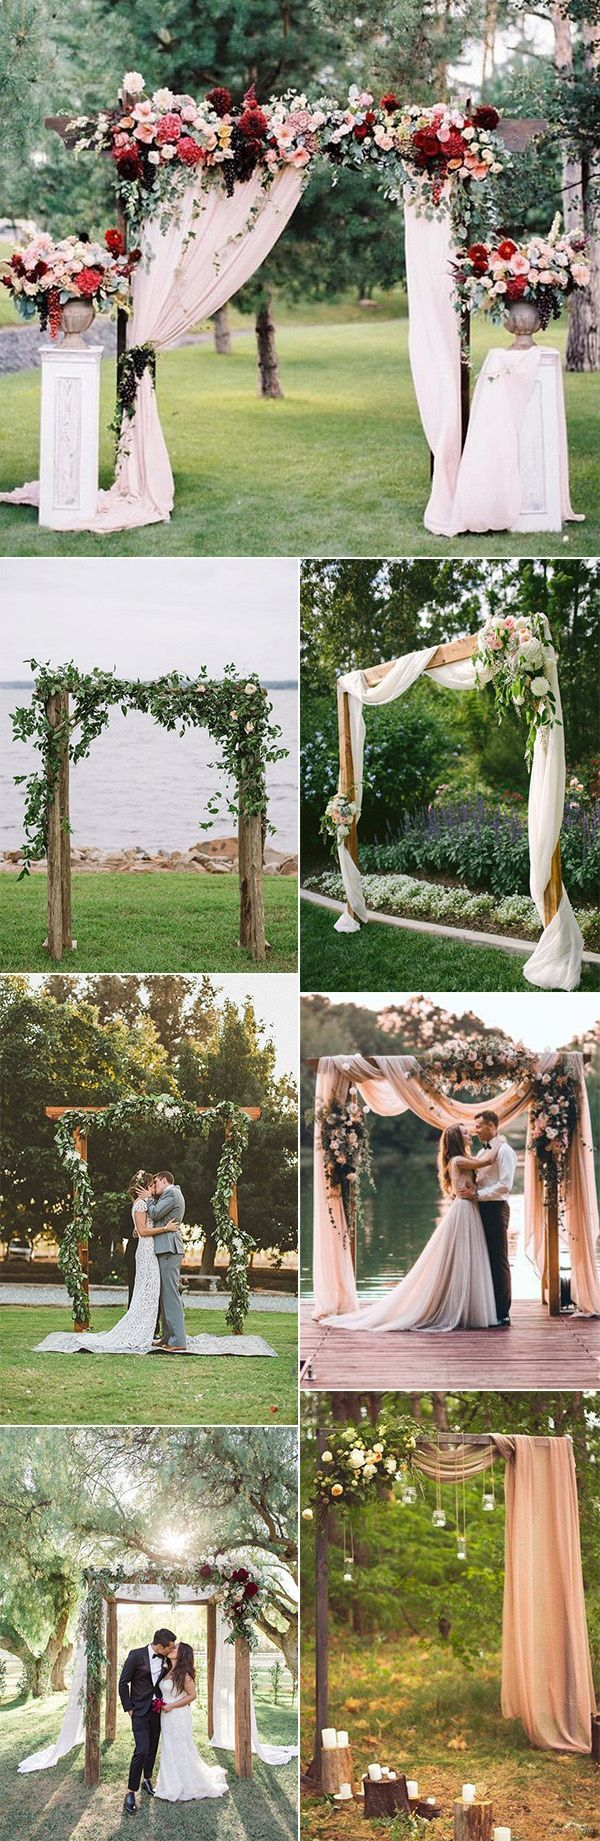 outdoor wedding ceremony arch decoration ideas for 2018 #OutdoorWeddings